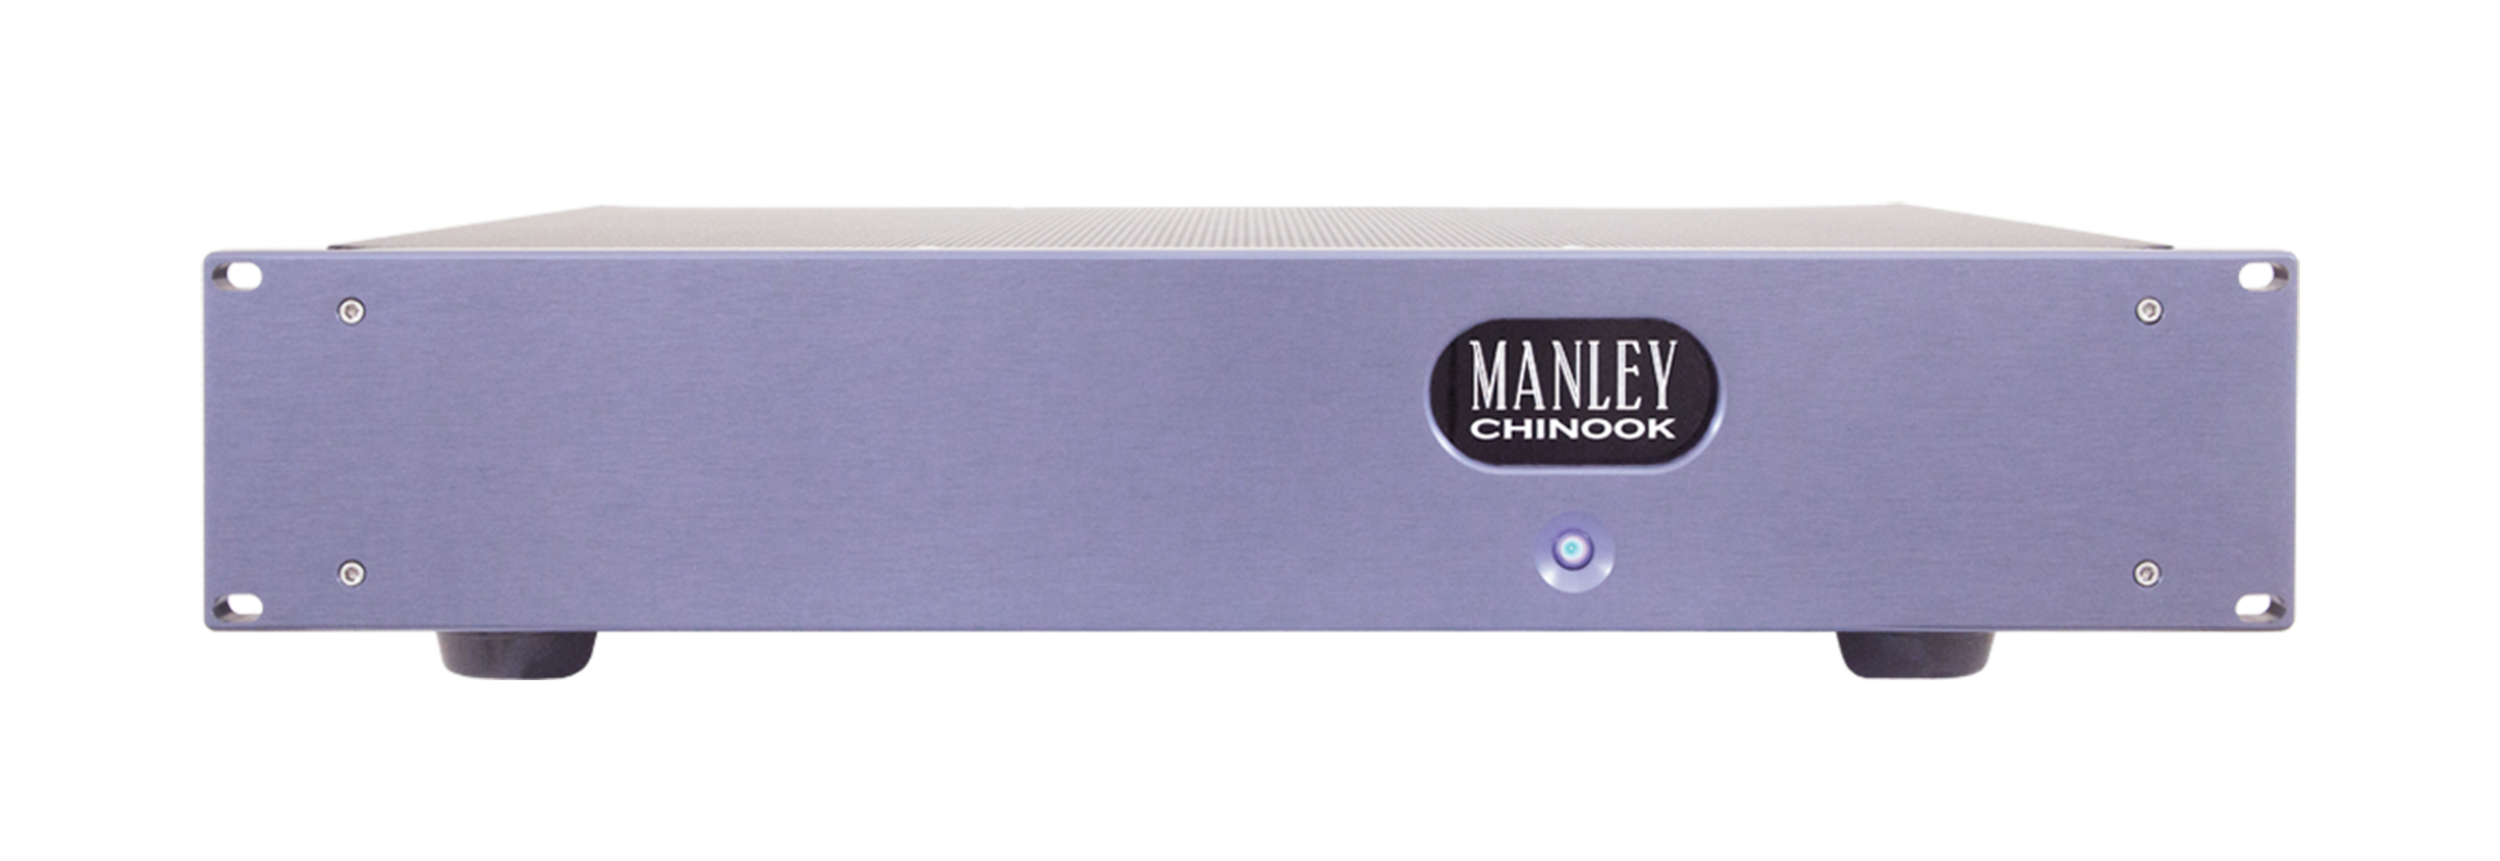 Manley Chinook Phono Stage image1